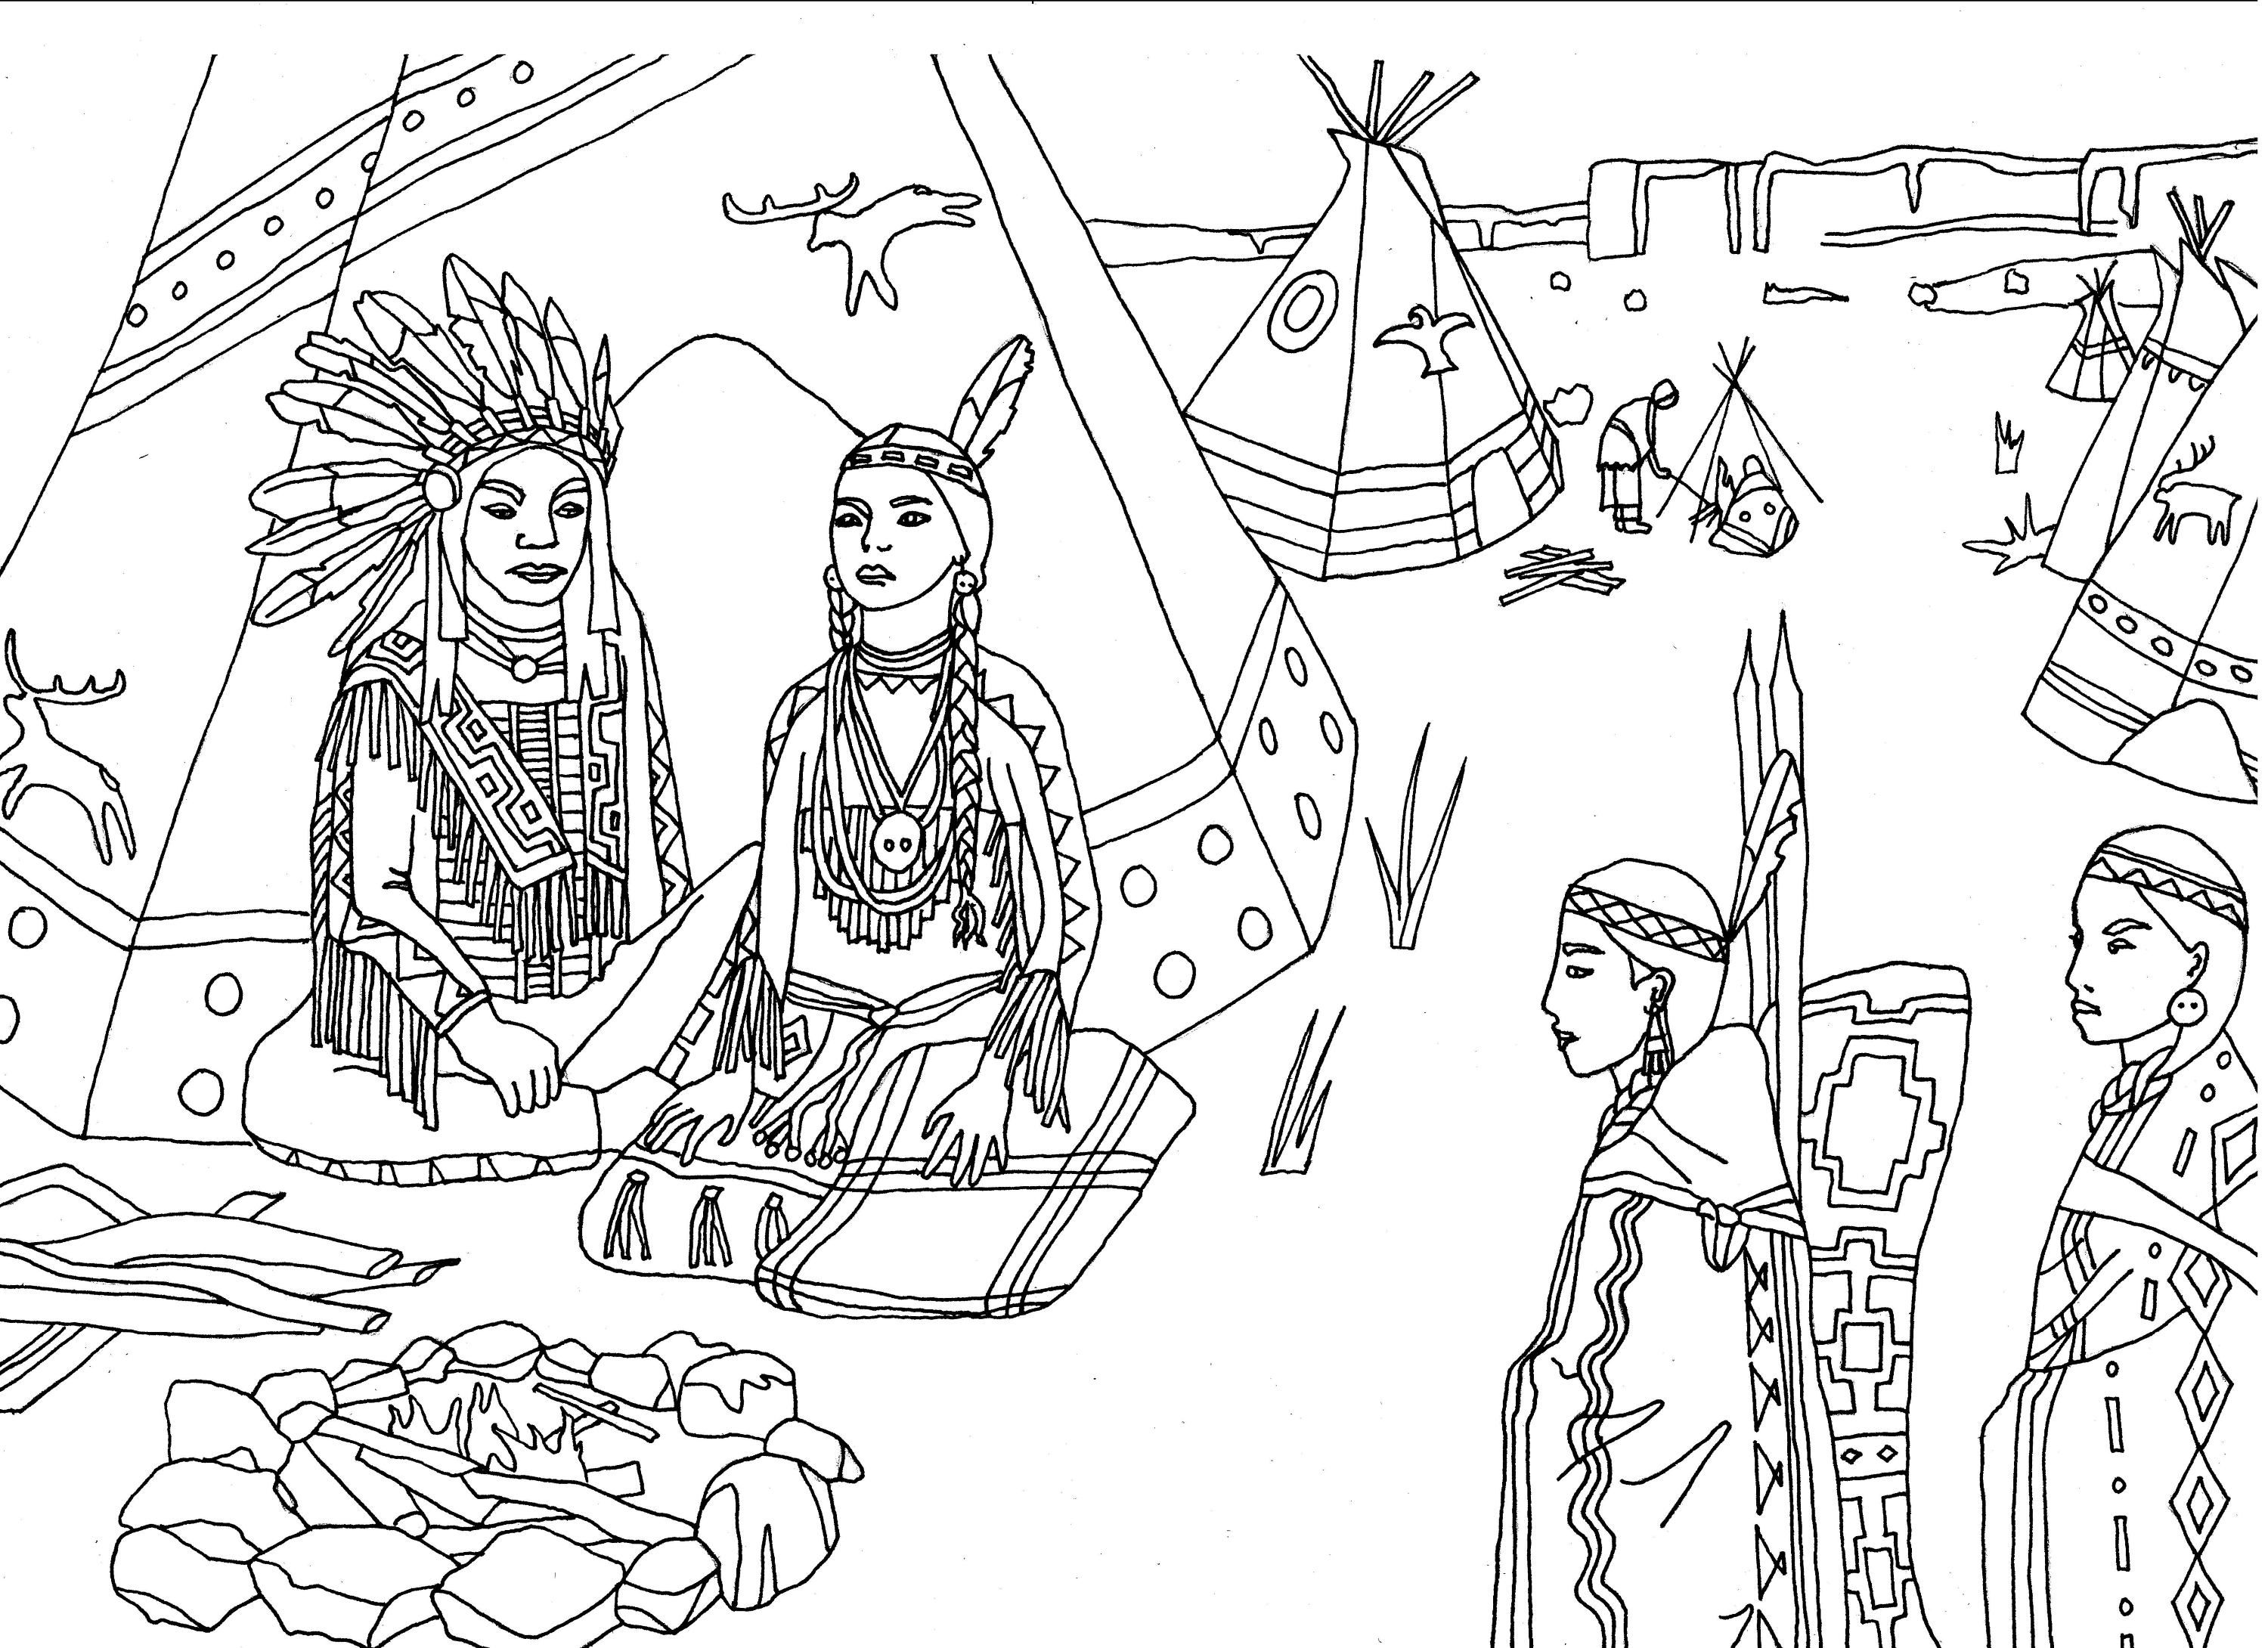 Coloring Pages Native American Symbols Coloring Pages native north american indians printable coloring pages color free page adult americans sat front